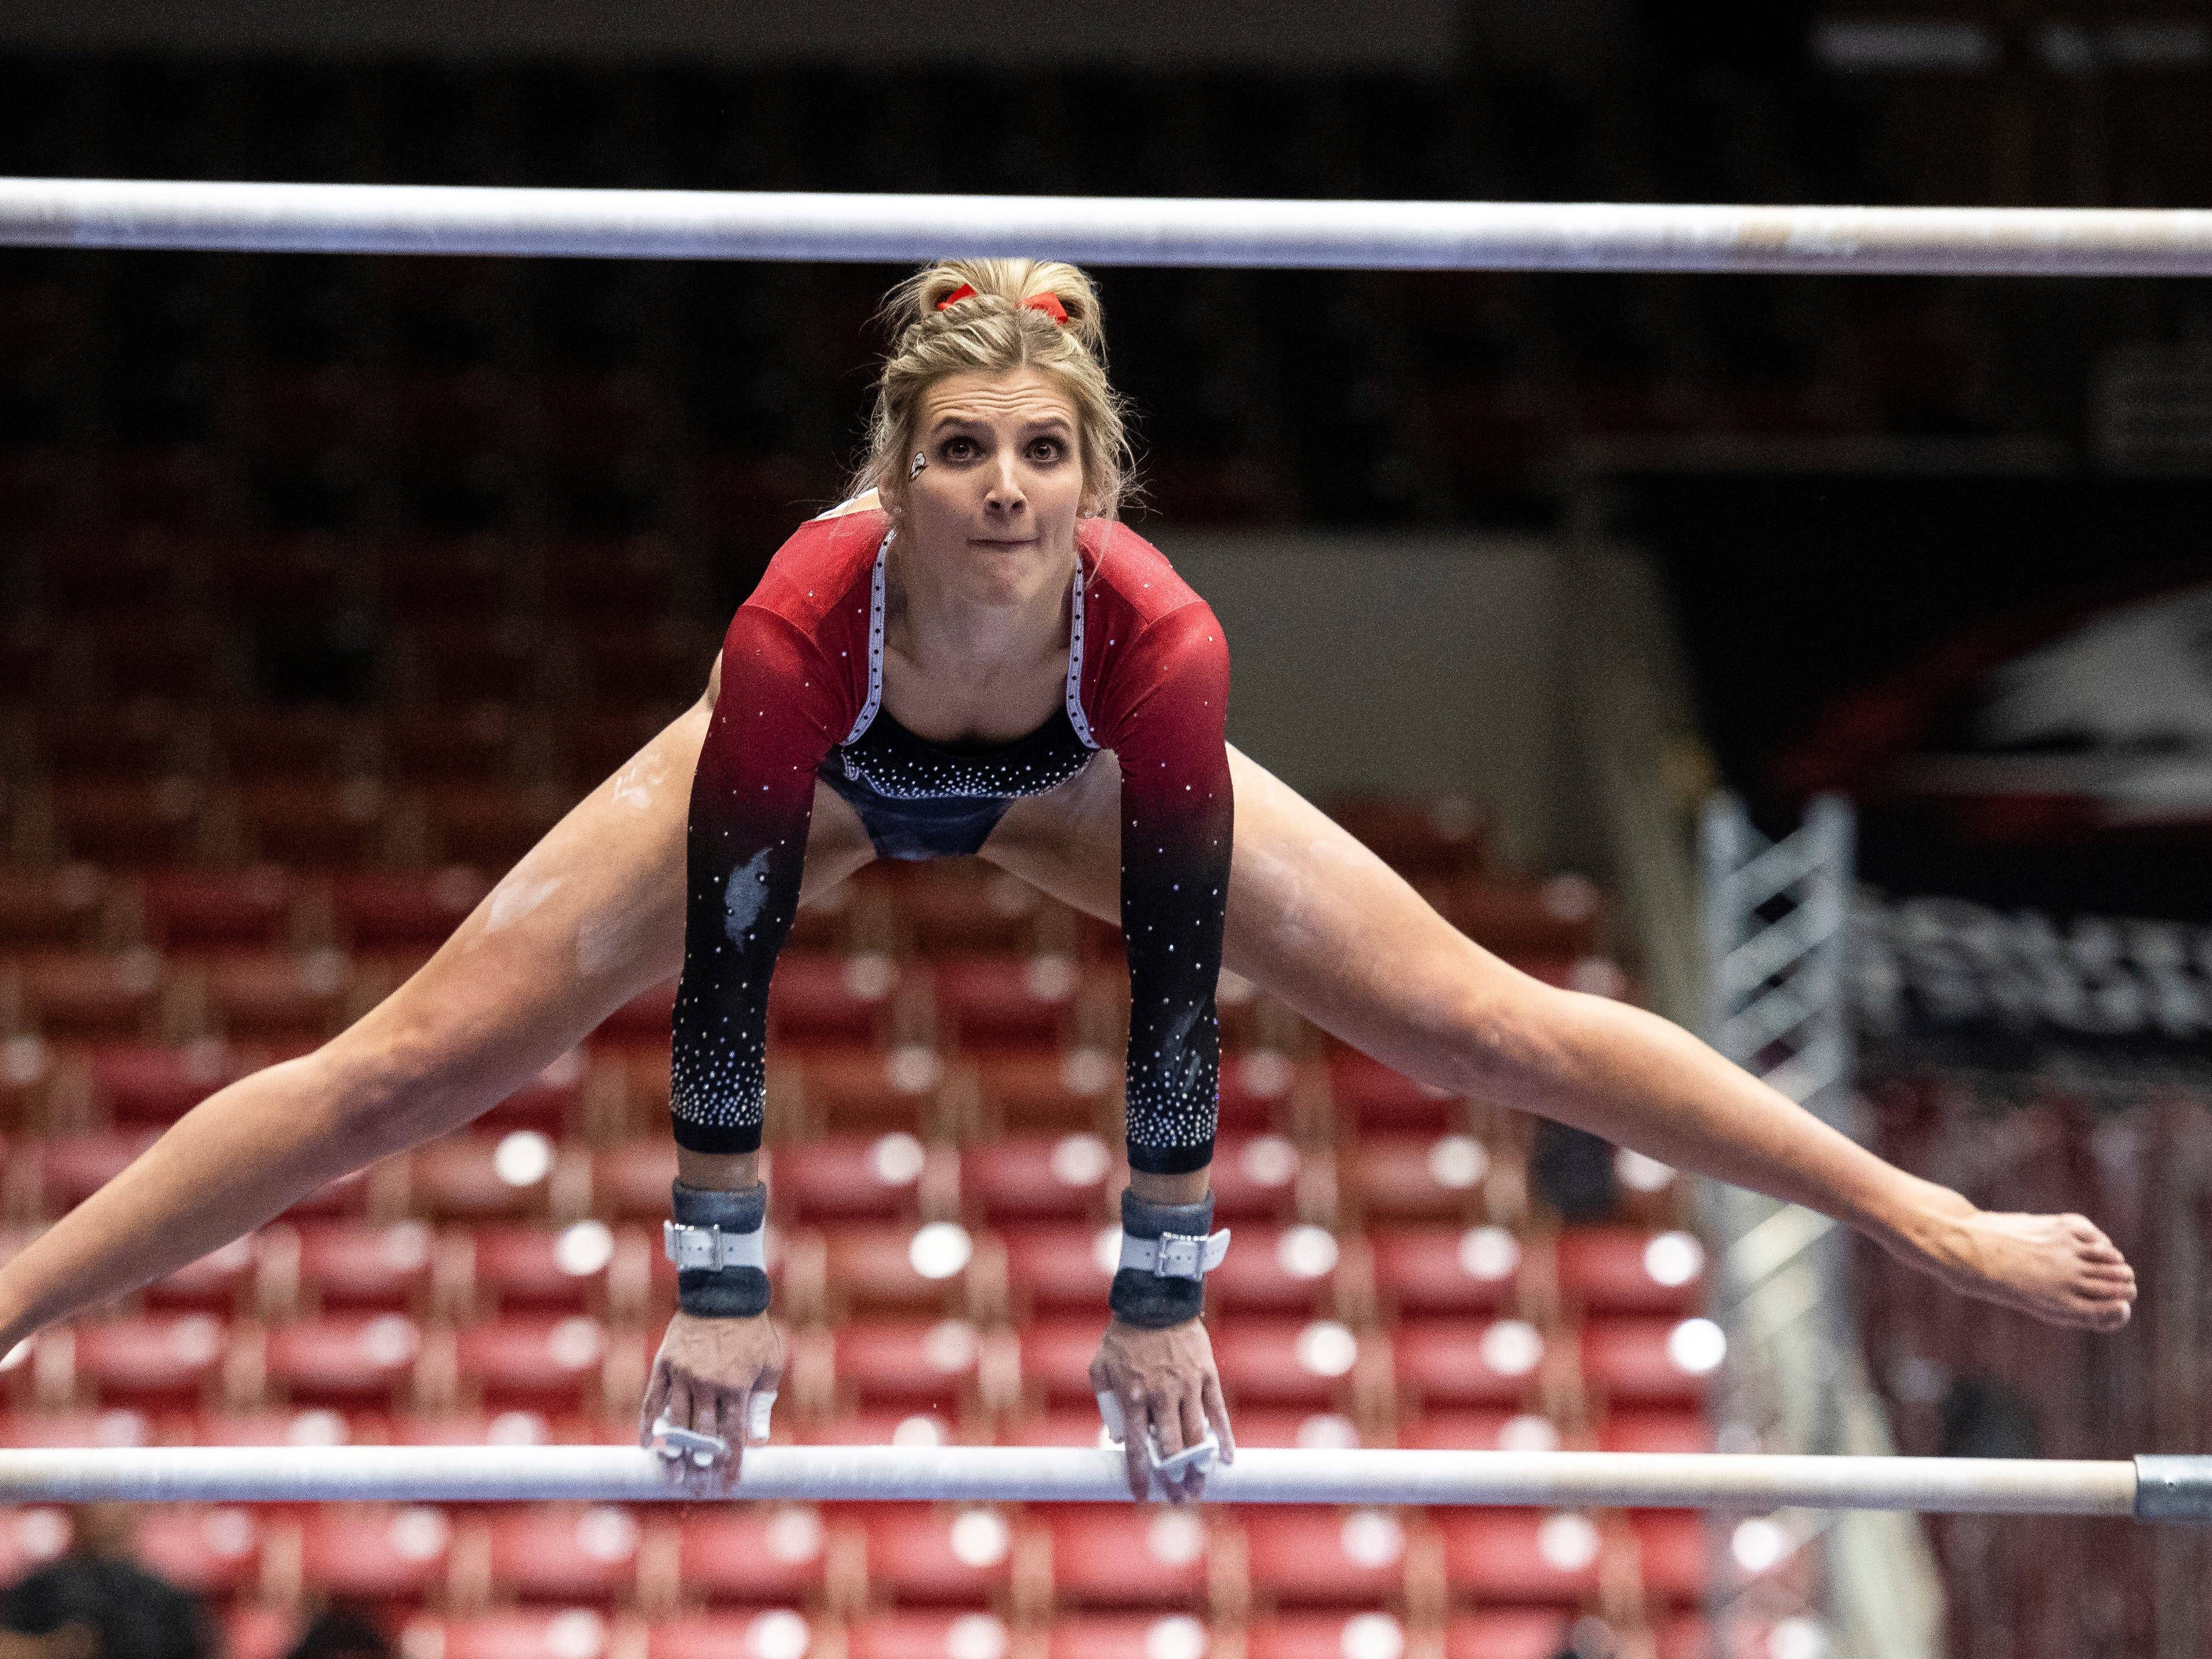 Southern Utah University junior Becky Rozsa-Thompson competes on the uneven bars against New Hampshire in the America First Event Center Monday, January 7, 2019.